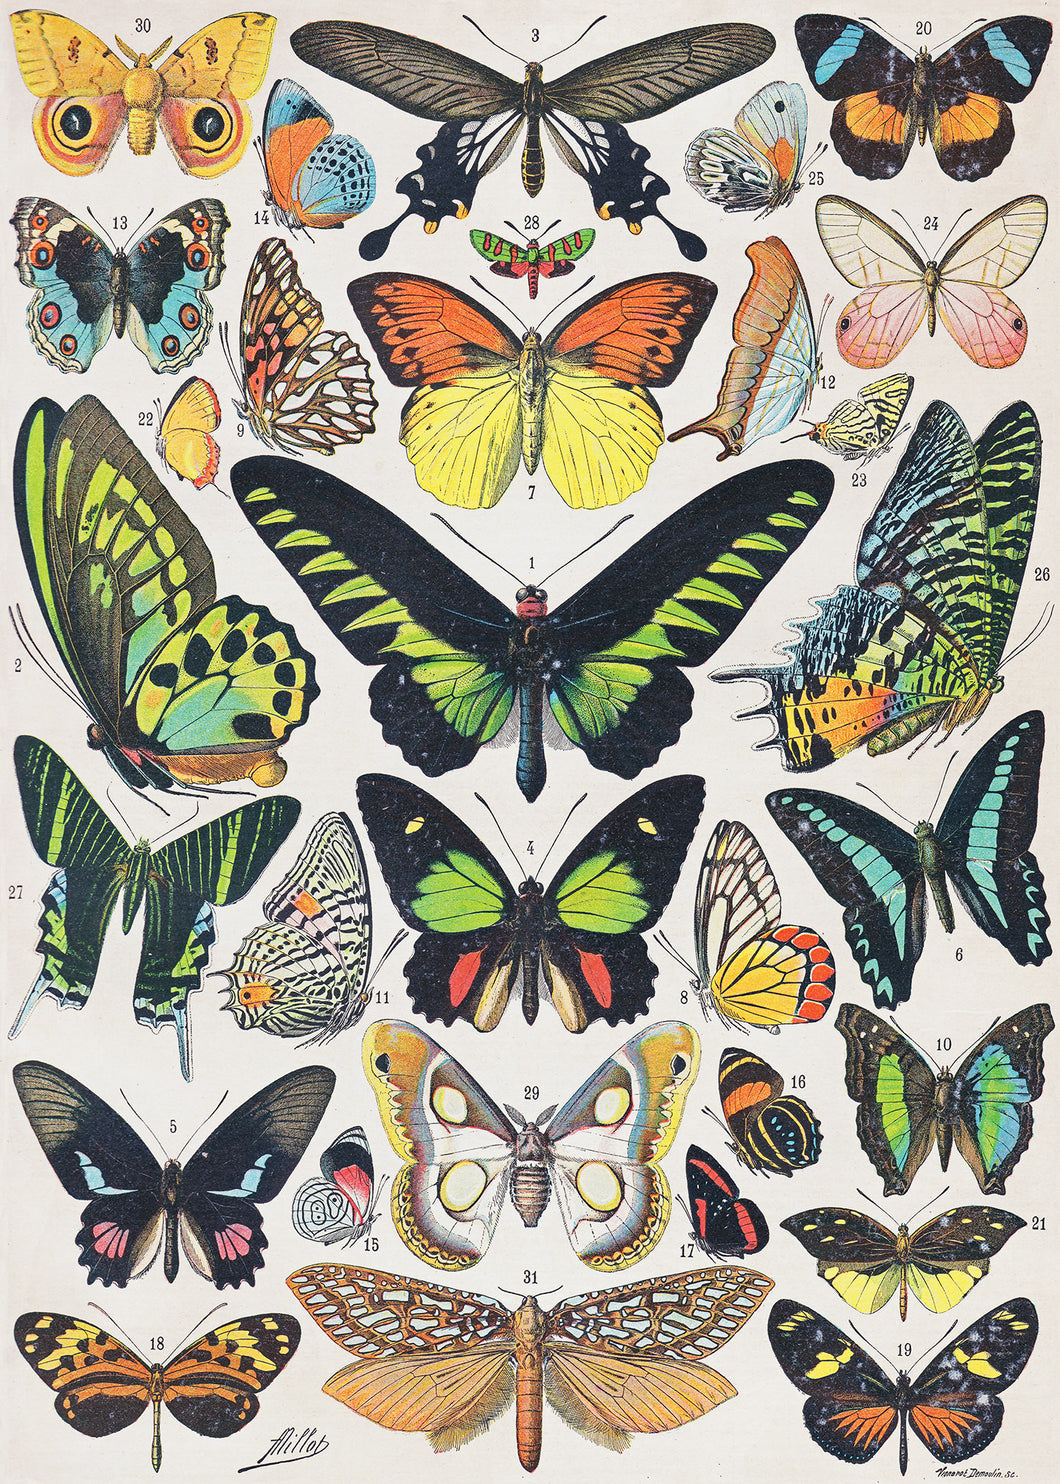 Papillons Exotiques (Tropical Butterflies) - 1000 Piece Puzzle